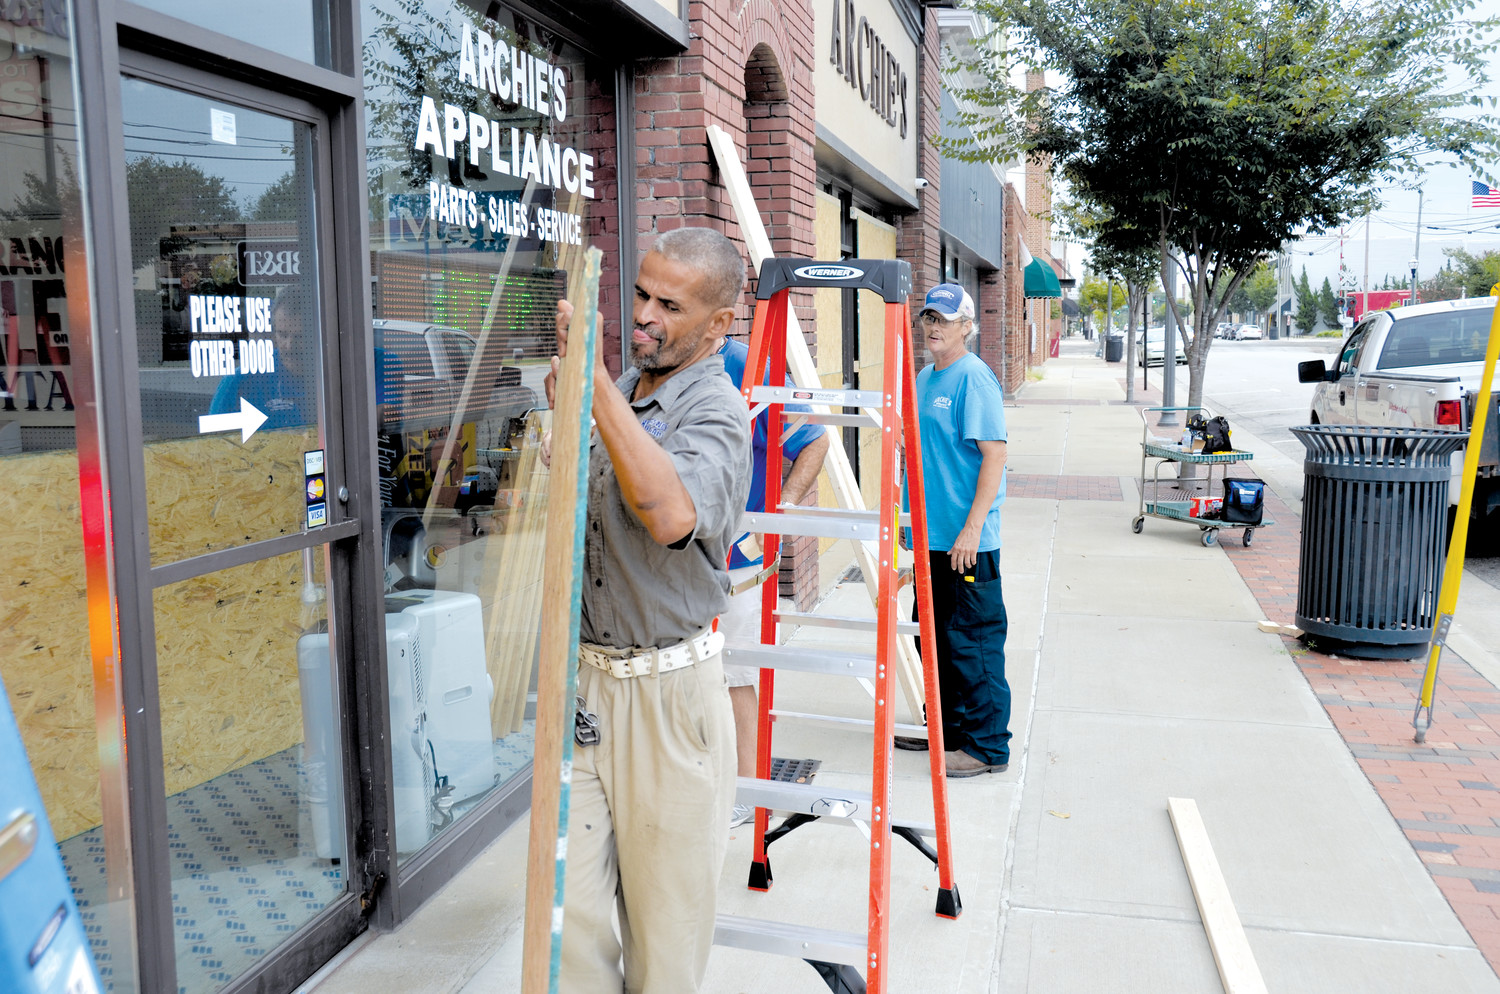 Area businesses took the time to ready for Hurricane Florence. Many windows and doors in the downtown area of Dunn could be seen covered with wood or plastic and anchored with tape and sandbags. One of those places was Archie's Appliances. Will Porter moves a piece of plywood while Don Wood and Gary Lee watch.